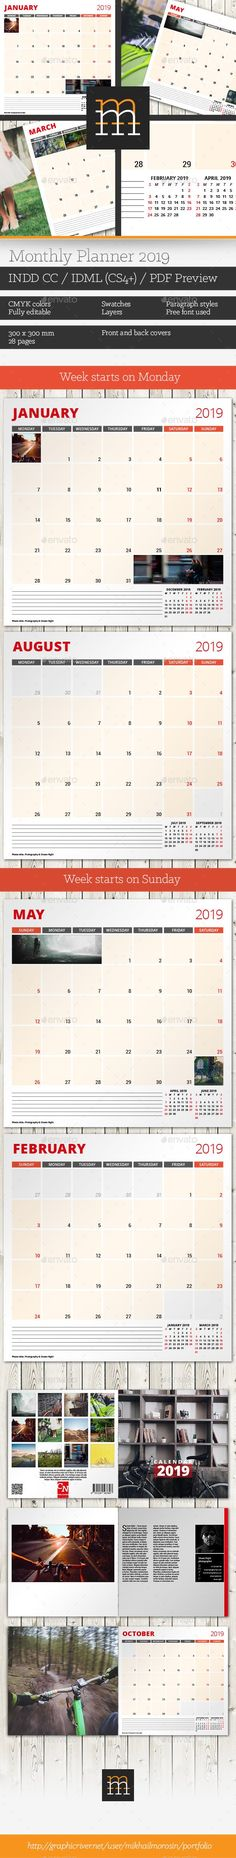 Buy Monthly Planner 2019 by mikhailmorosin on GraphicRiver. Features: 2019 planner Week starts on Monday Week starts on Sunday 28 pages Front and back cover pages Information ab. Stationery Printing, Stationery Templates, Stationery Design, Print Templates, Calendar Templates, Graphic Design Print, Monthly Planner, Anime Artwork, Cover Pages